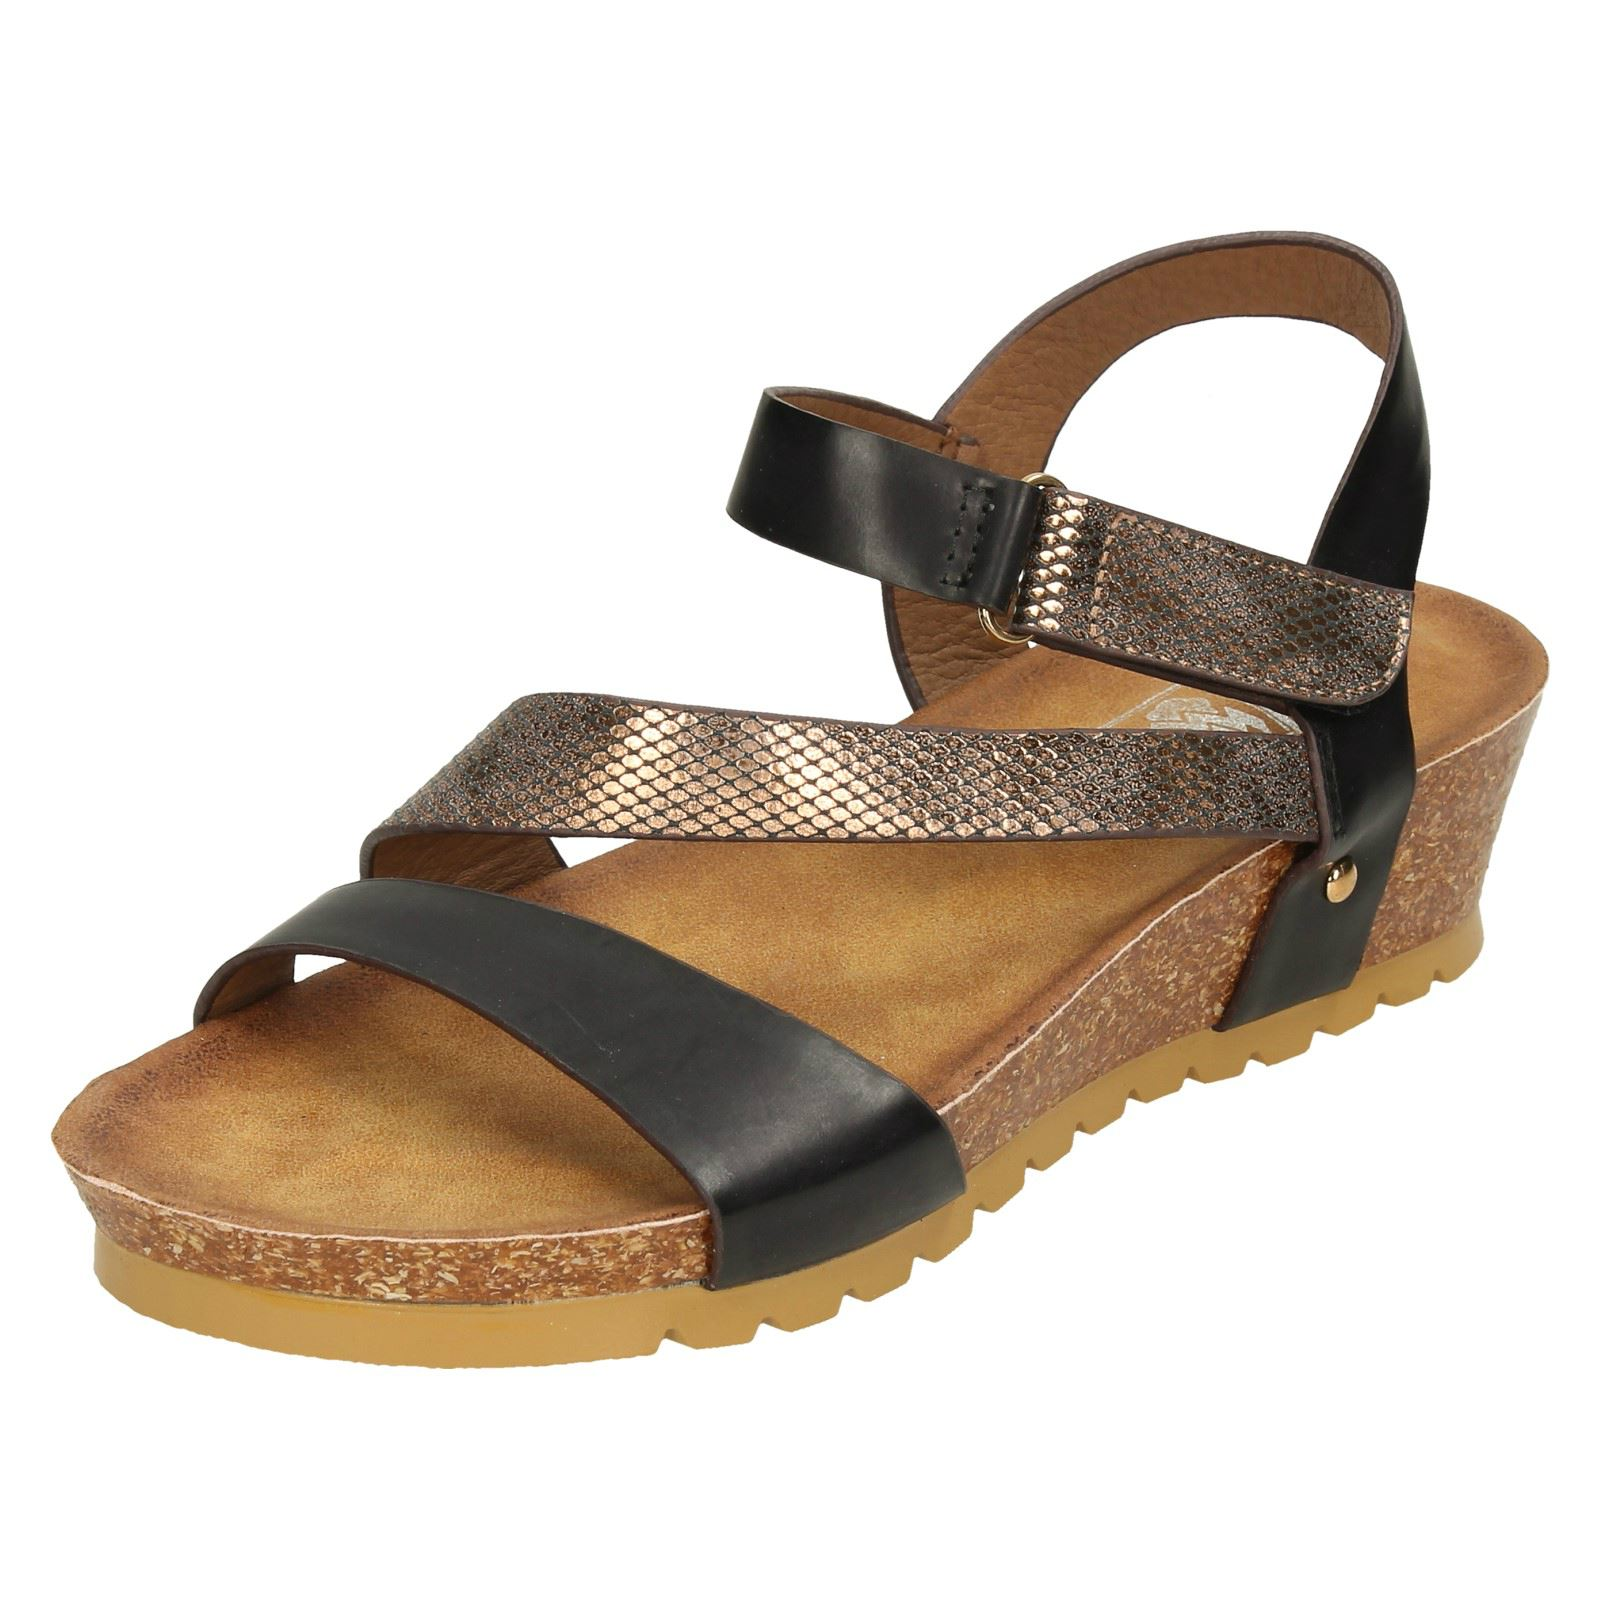 Donna Down To Earth mezza zeppa open toe sandali con cinturino